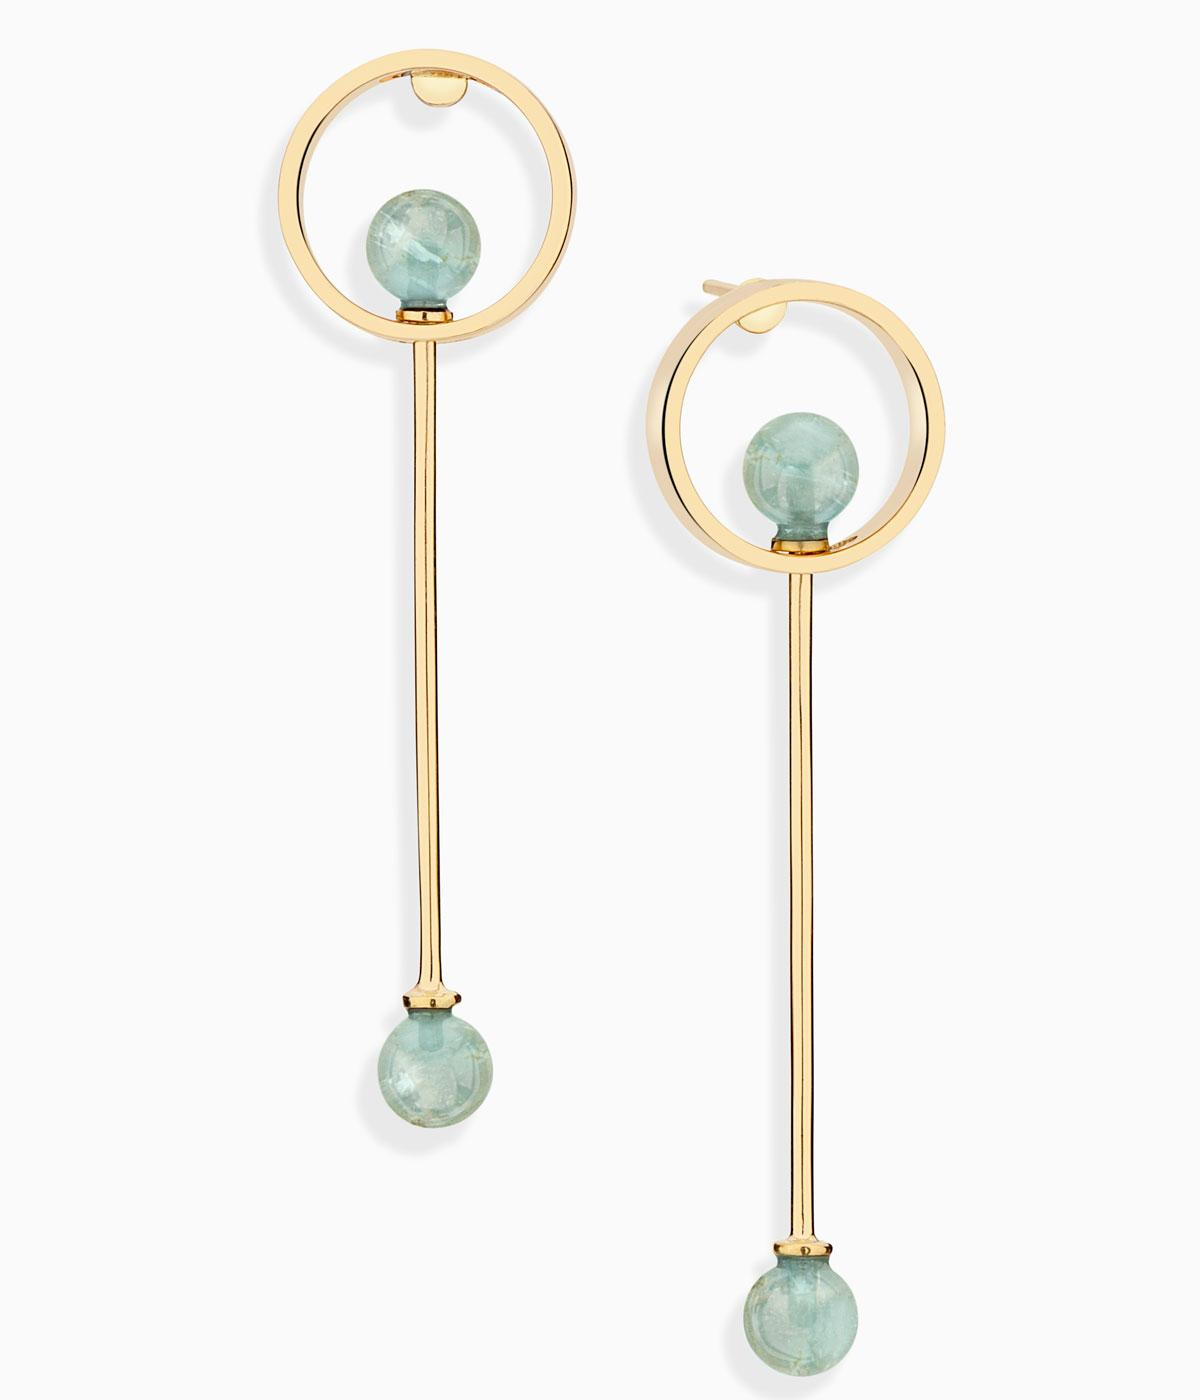 Gold dangle earrings with aquamrine stones